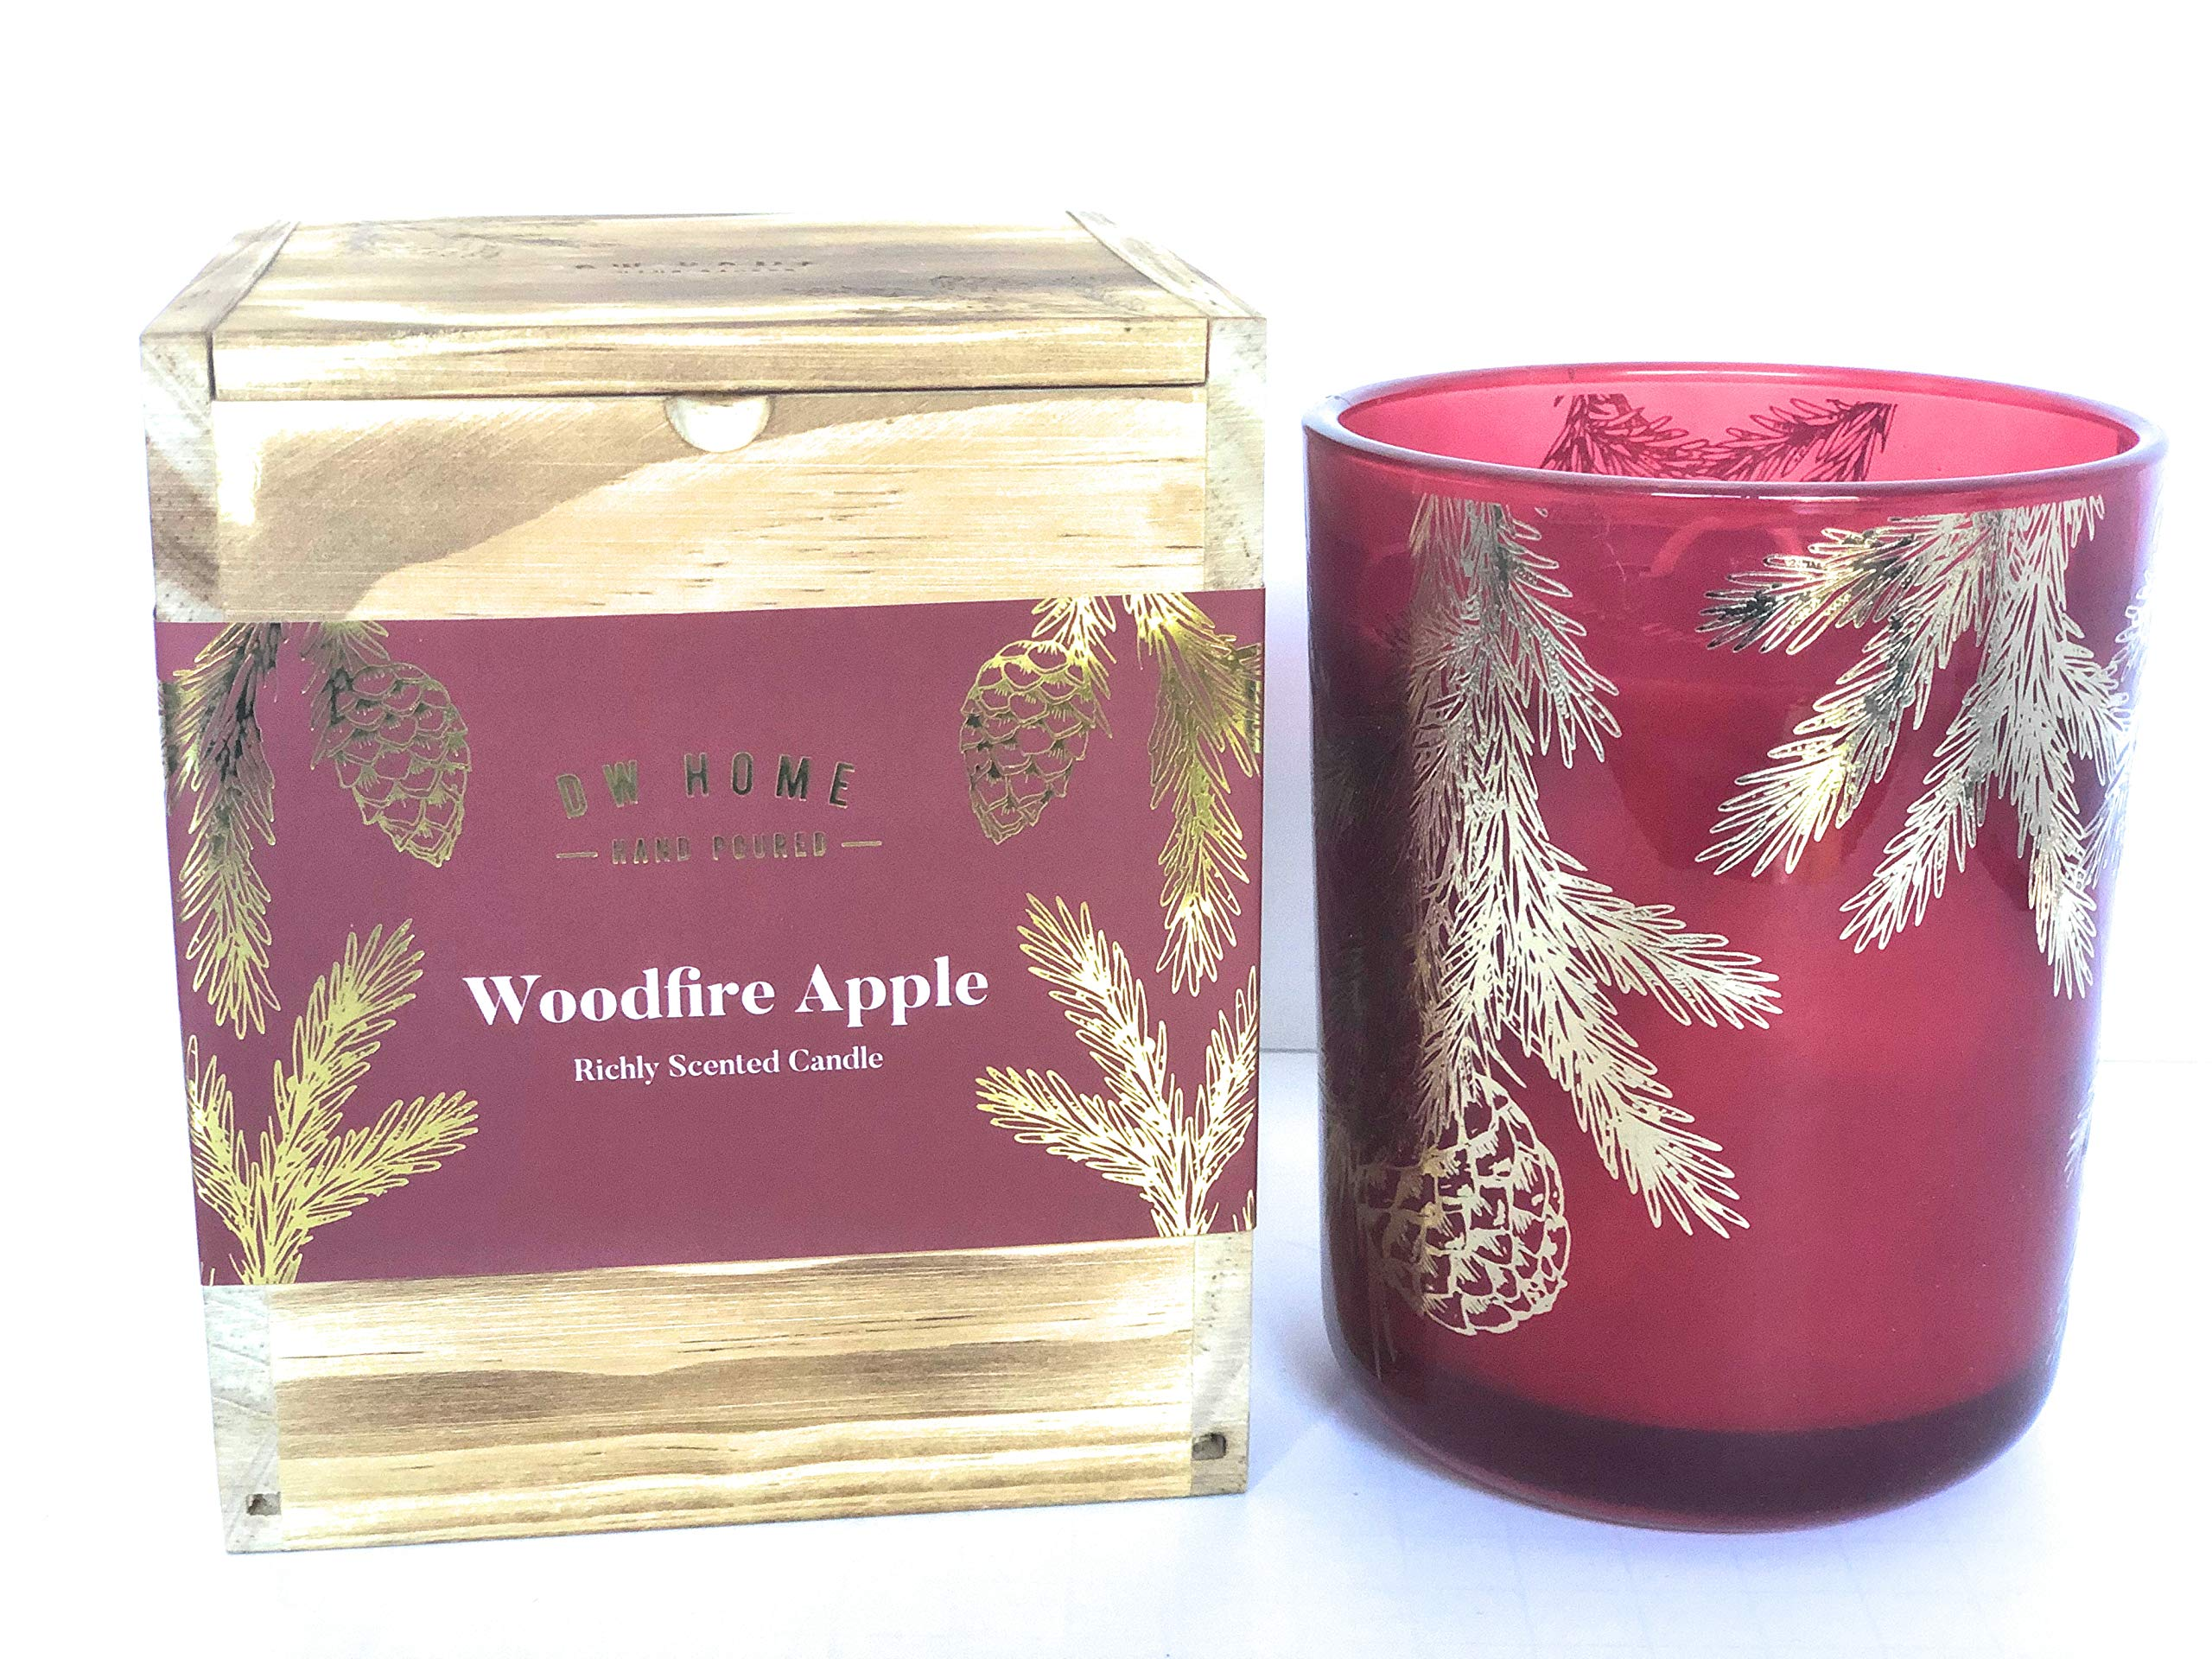 DW Home Woodfire Apple Double Wick Hand Poured Richly Scented Candle in Wooden Gift Box 15 Oz